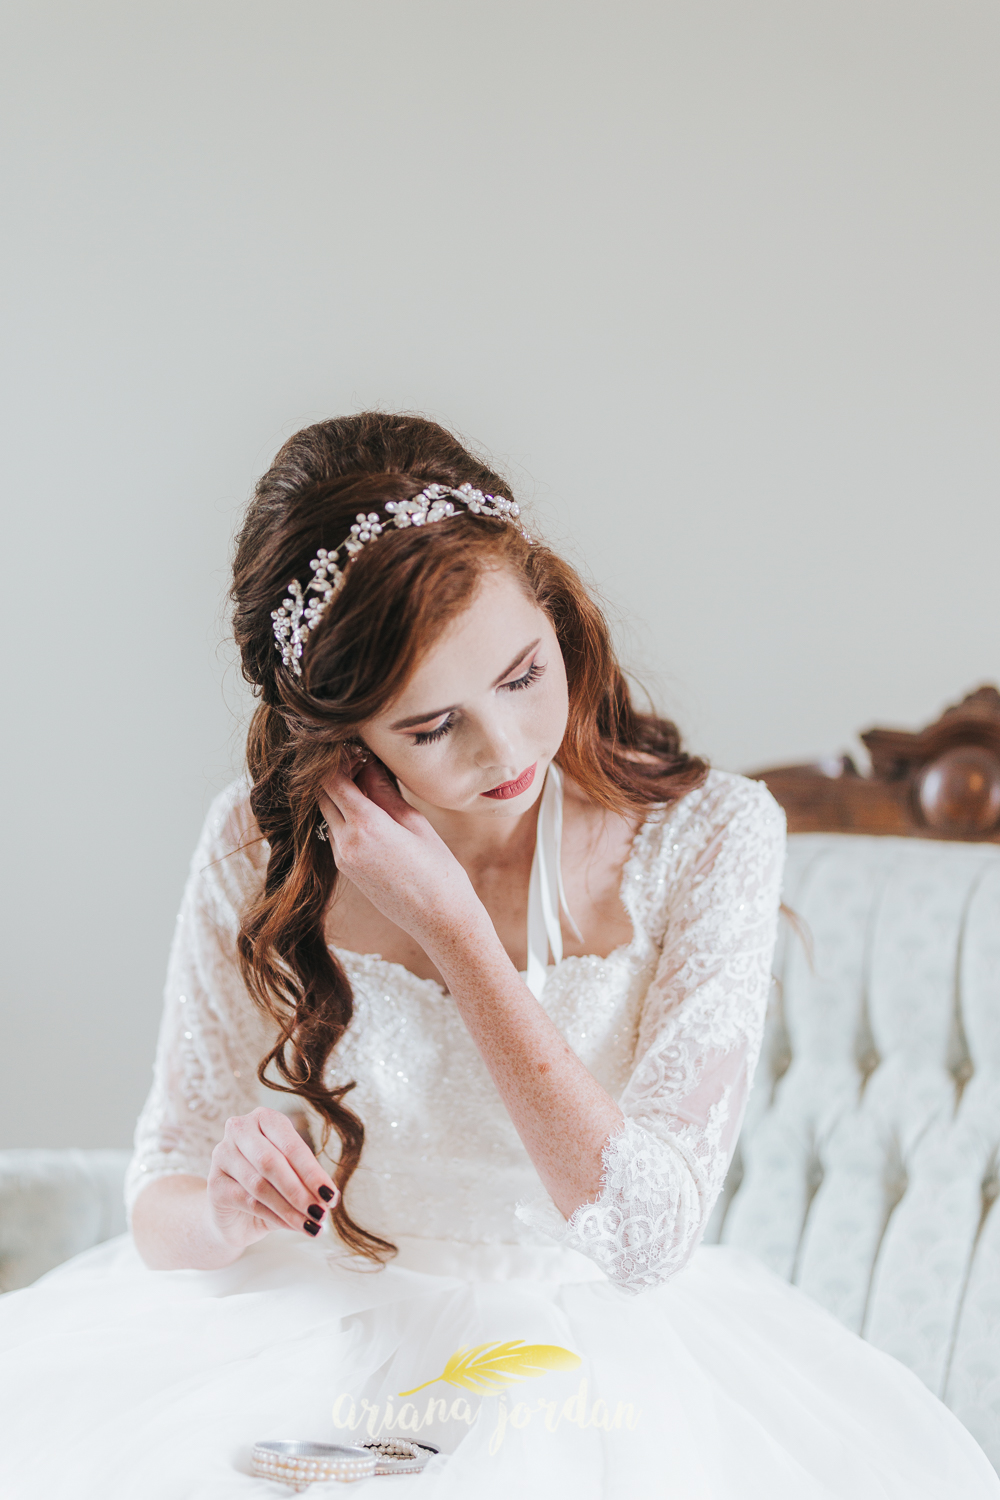 073 - Ariana Jordan - Kentucky Wedding Photographer - Landon & Tabitha_.jpg